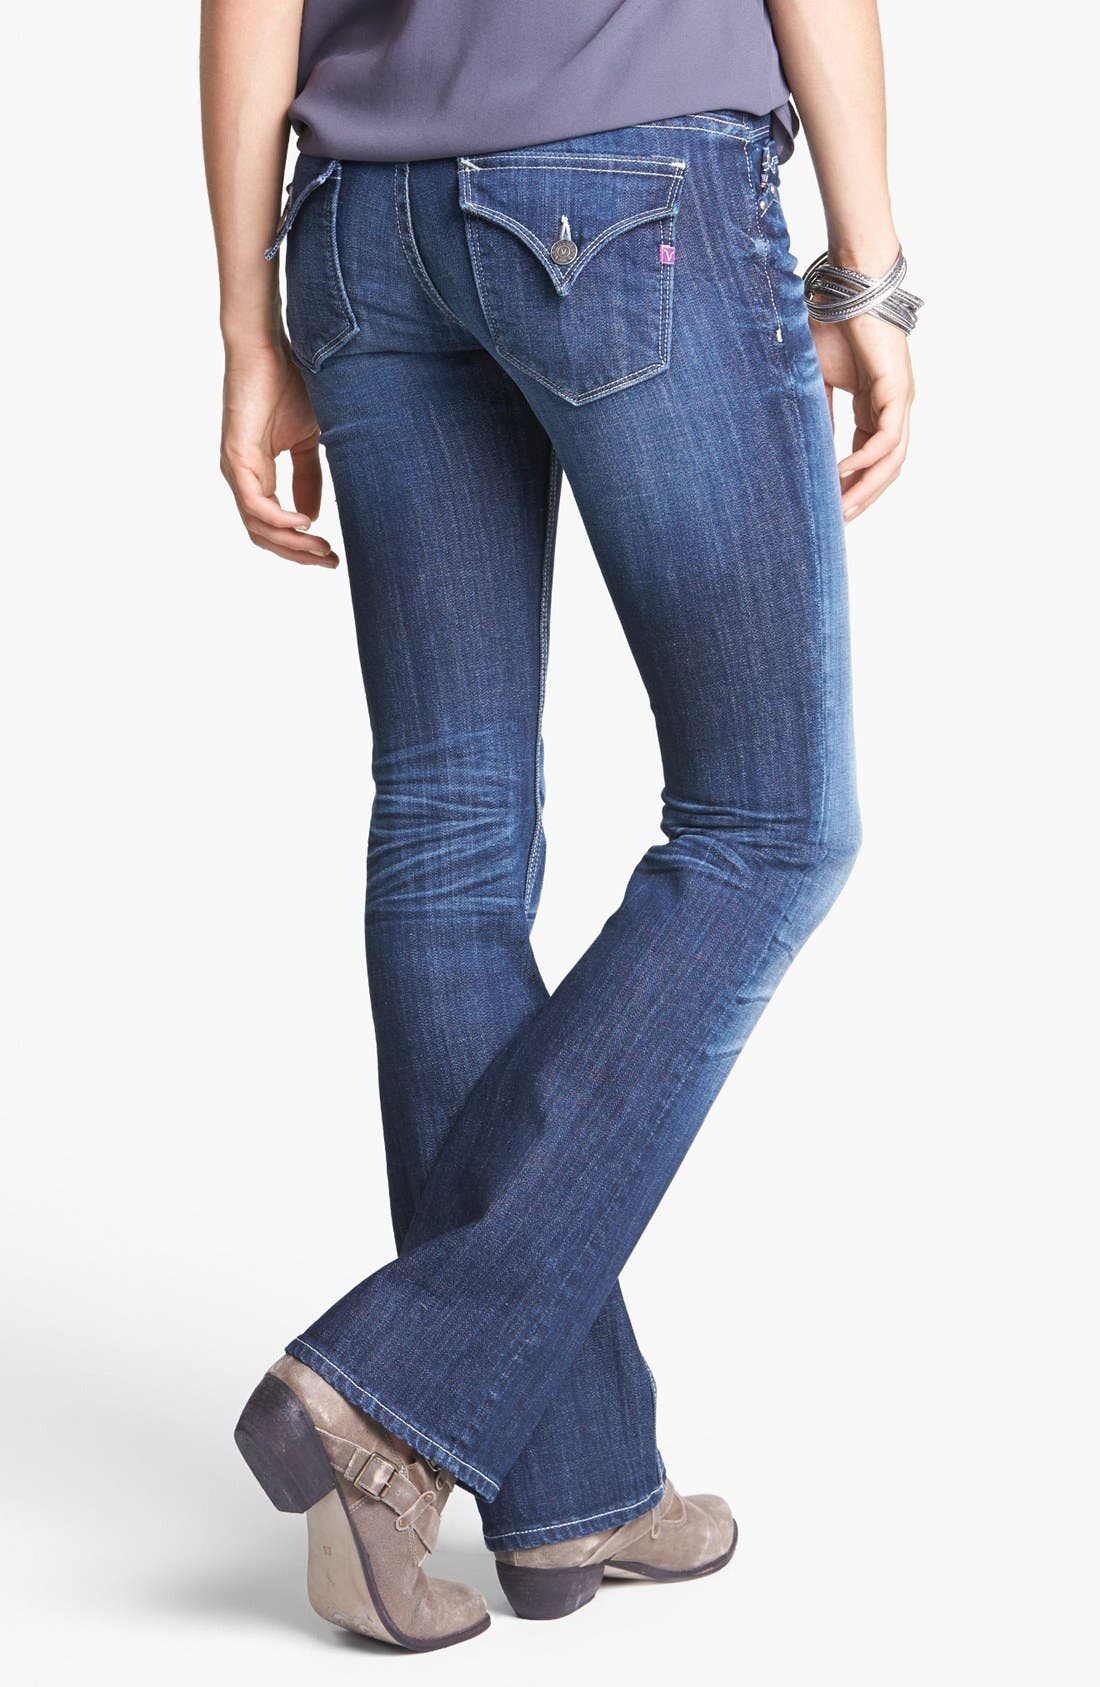 Alternate Image 1 Selected - Vigoss Flap Pocket Bootcut Jeans (Dark) (Juniors)